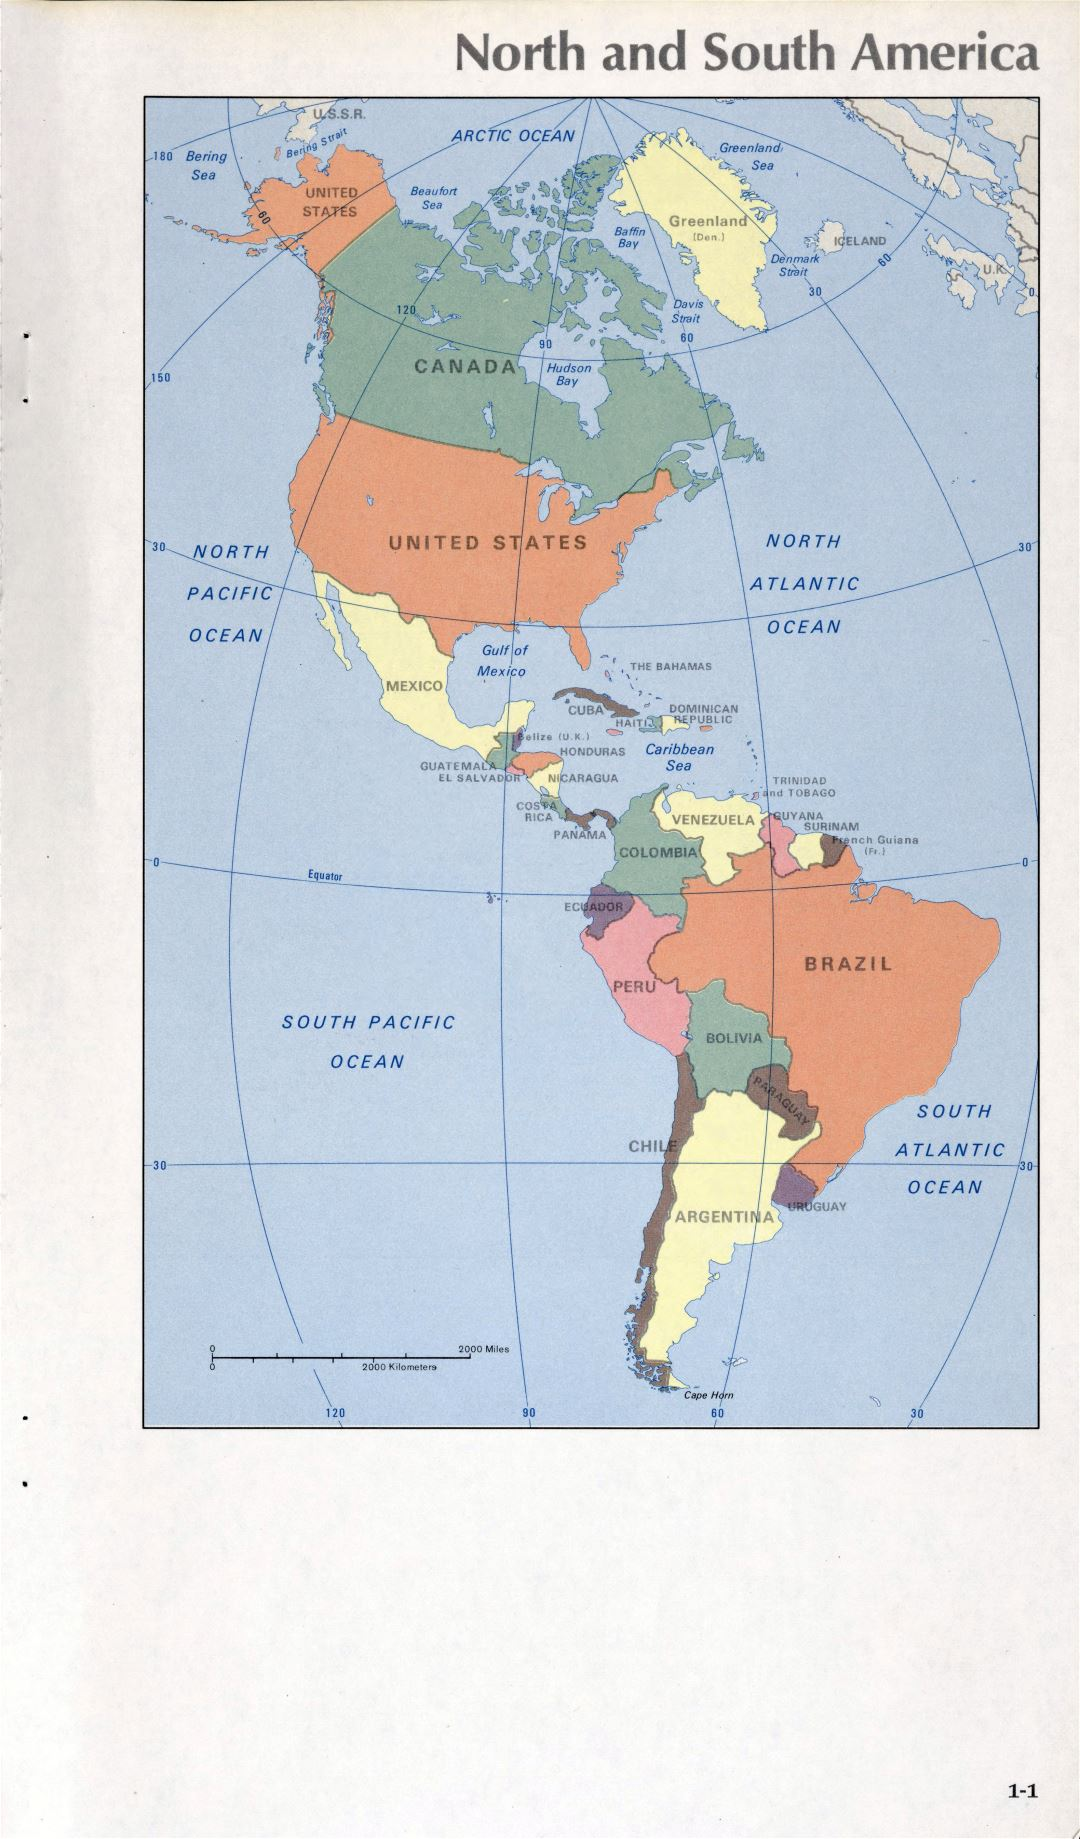 Map of North and South America (1-1)